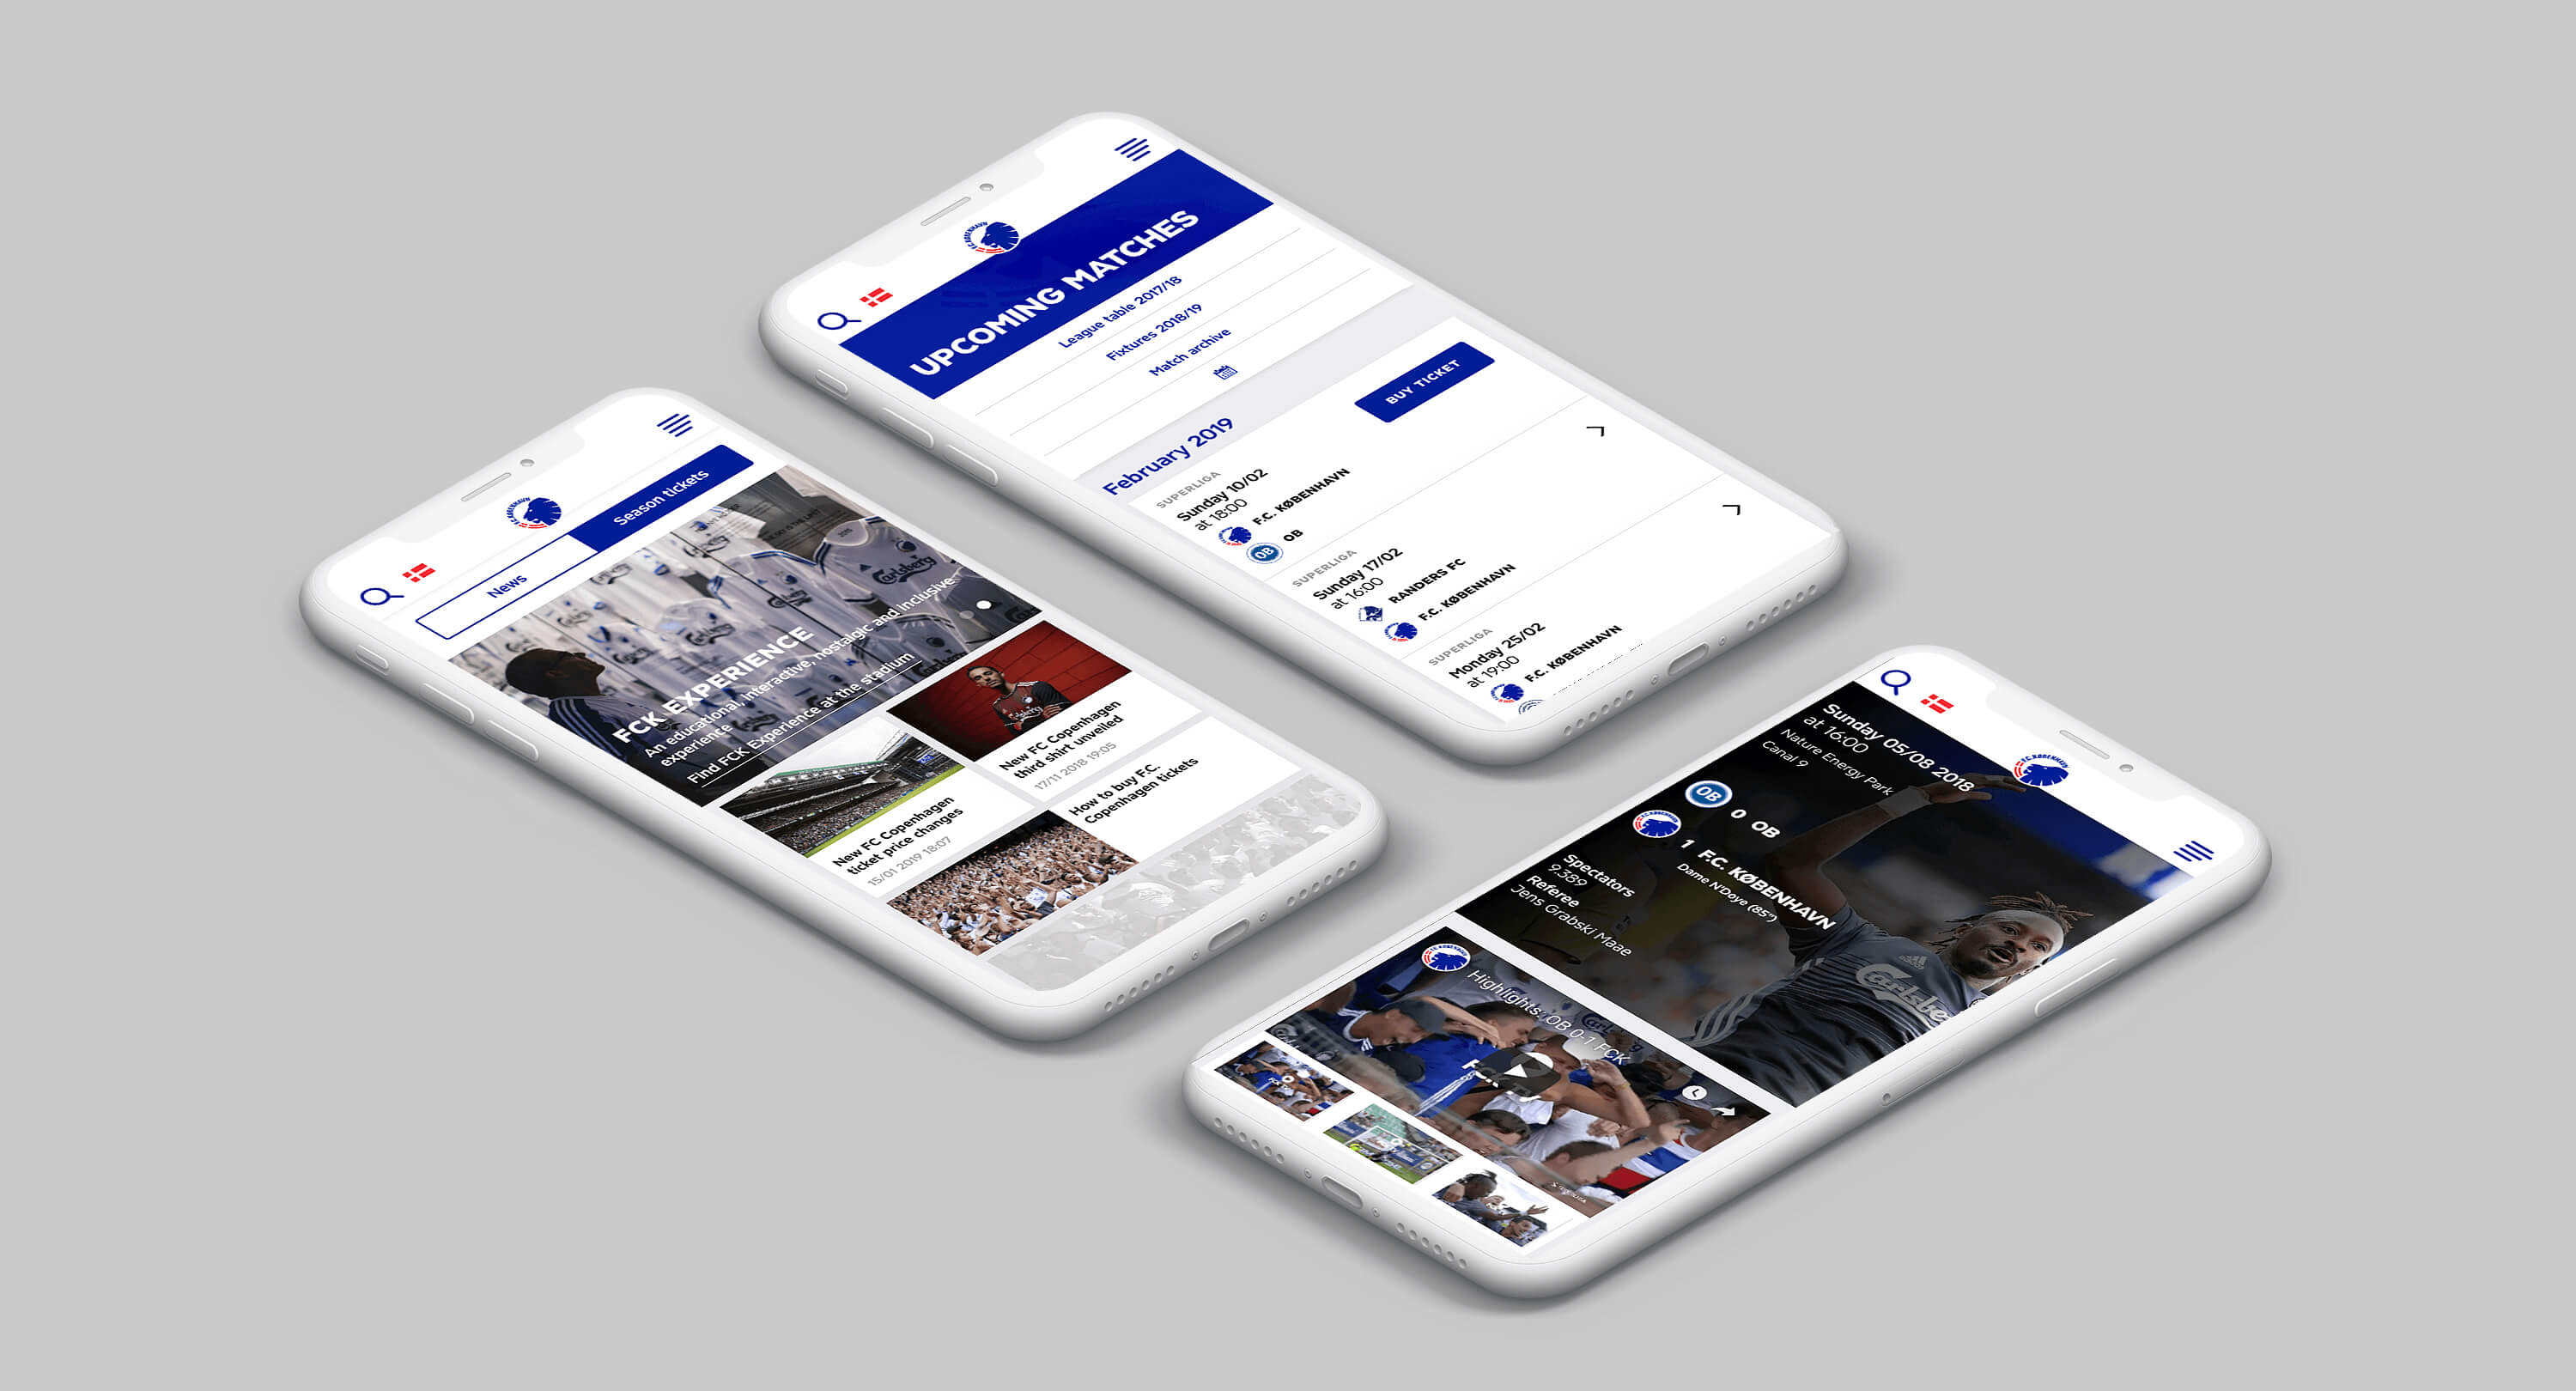 Image of F.C.Copenhagen mobile design